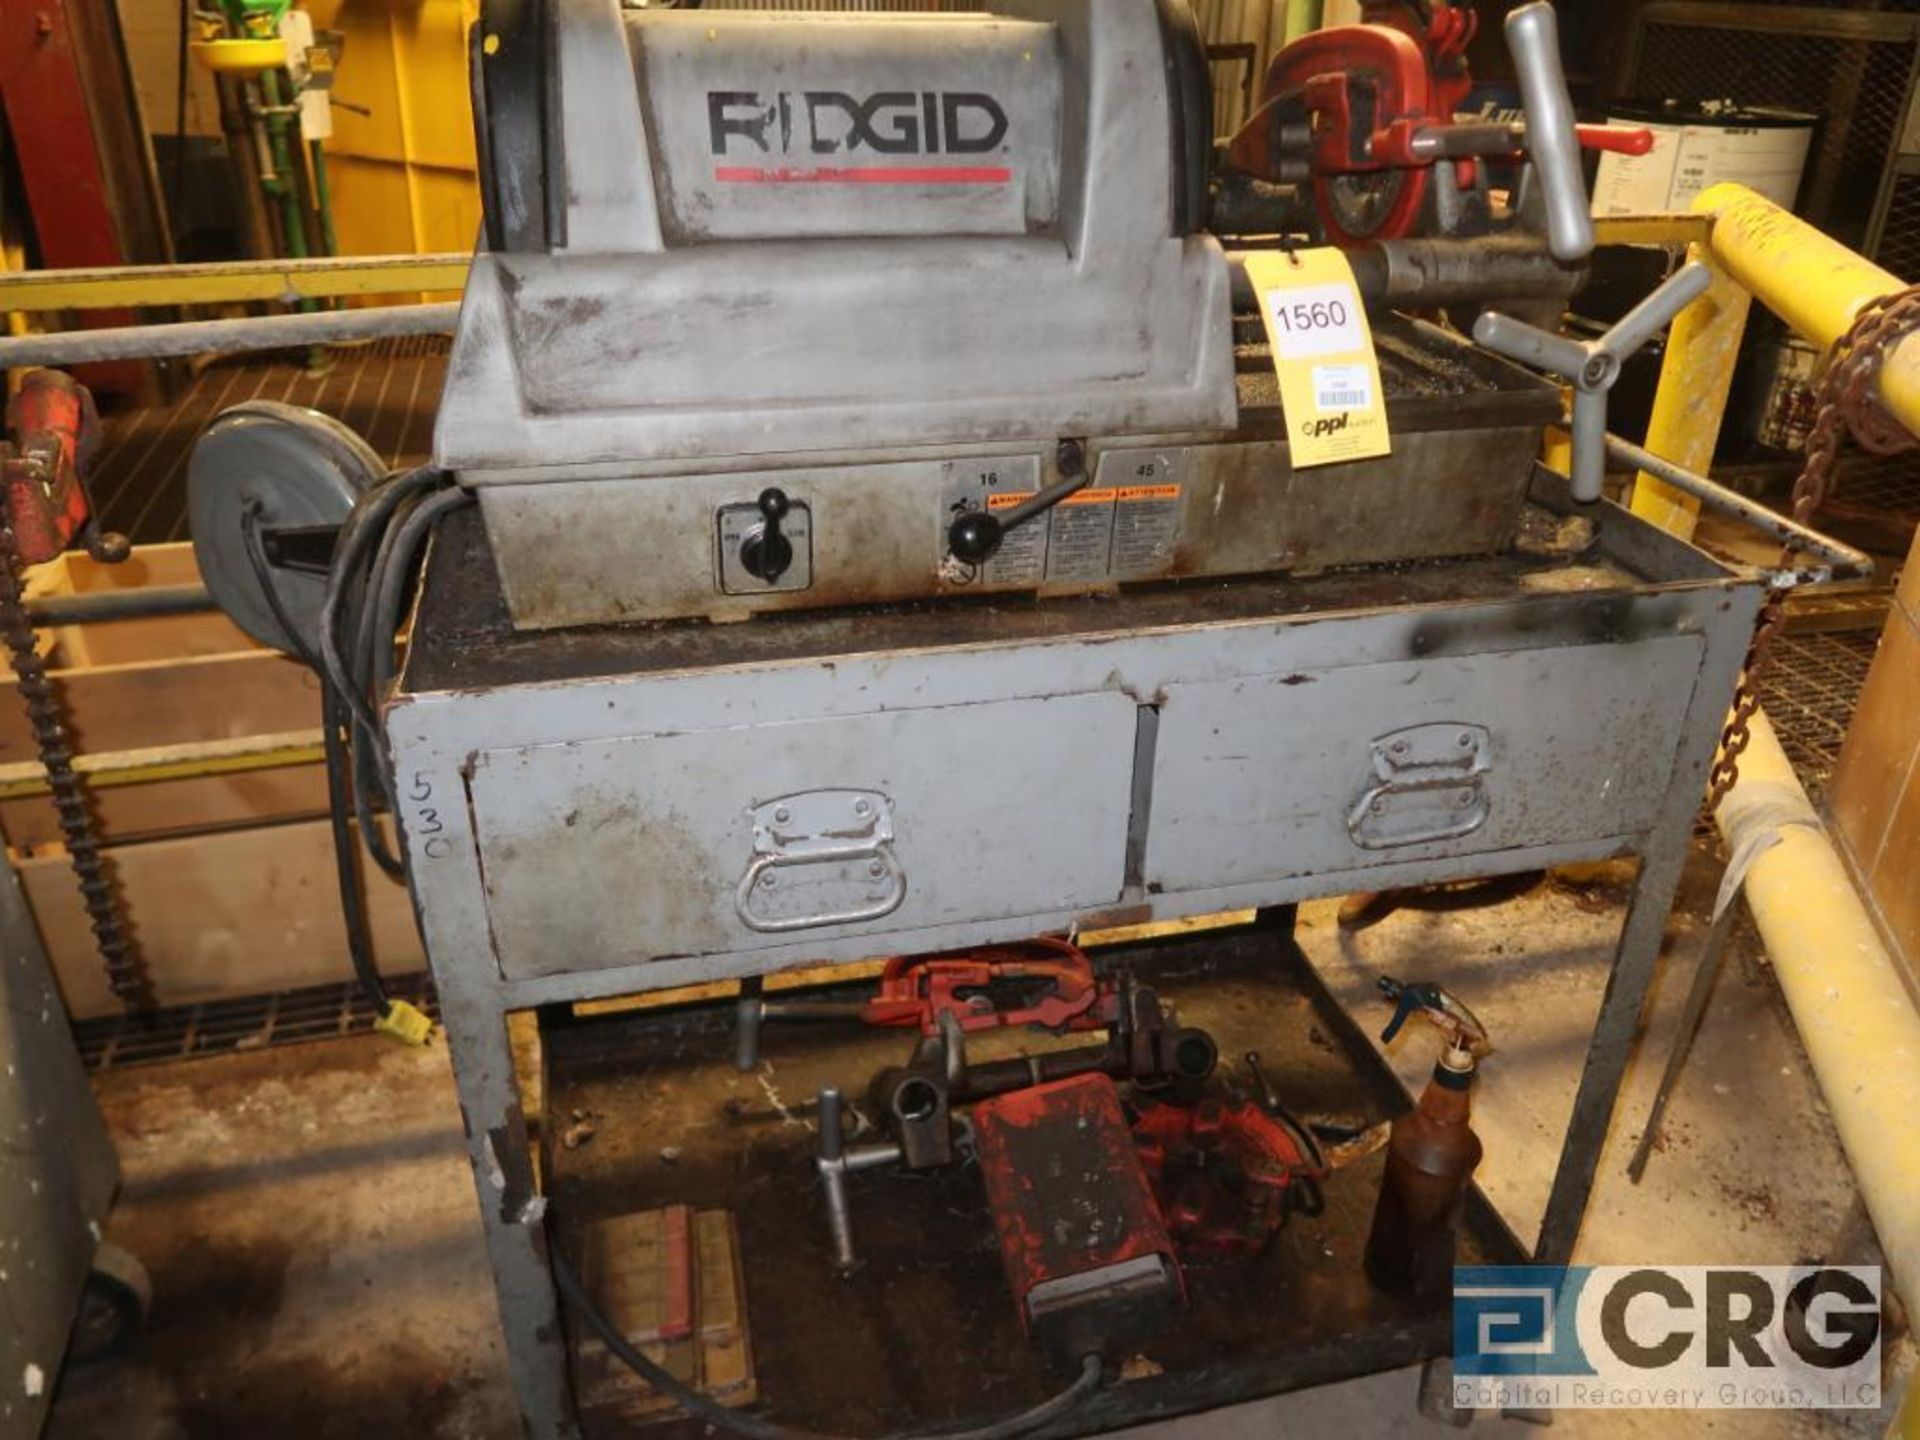 Ridgid 1822-1 pipe threader with (2) assorted heads, s/n EA1-58940197 (496 Dock Area) - Image 2 of 2